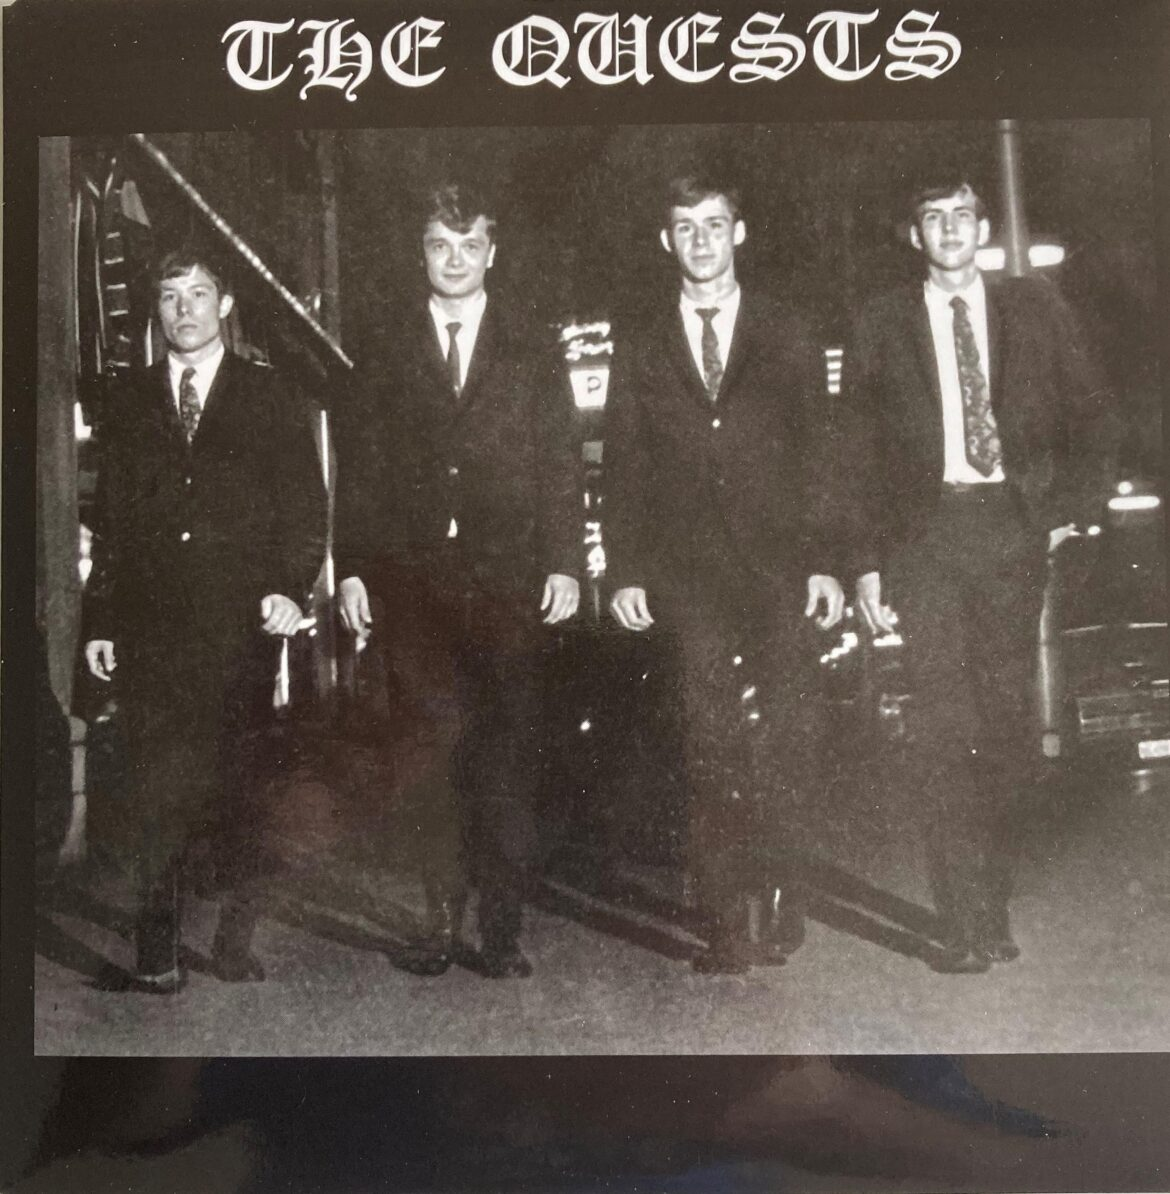 The Quests That's My Dream Previously unreleased Garage/Psych 1967